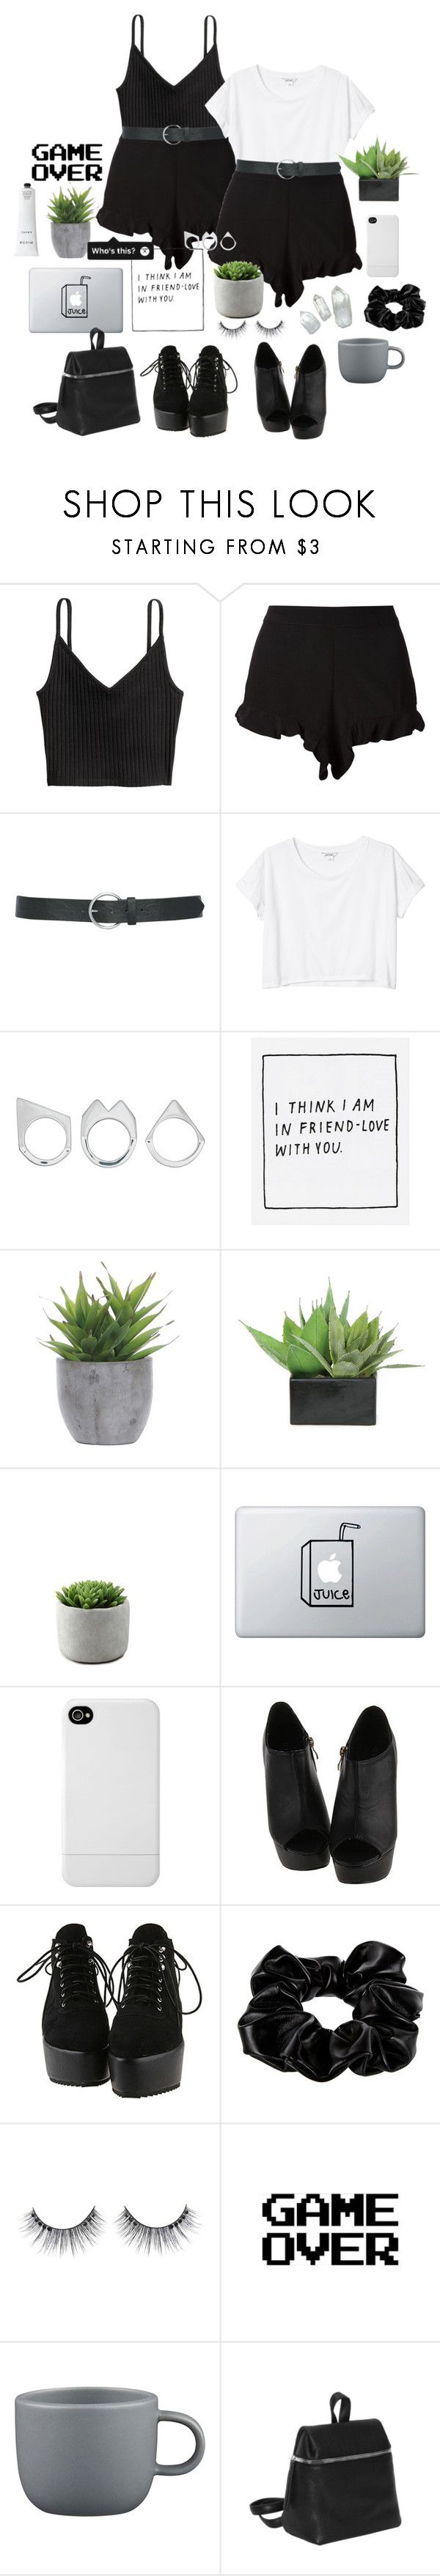 """4O ❁❤♡"" by r-elentless ❤ liked on Polyvore featuring H&M, Sam&Lavi, M&Co, Monki, Moratorium, Yumi, Lux-Art Silks, Incase, River Island and WALL"